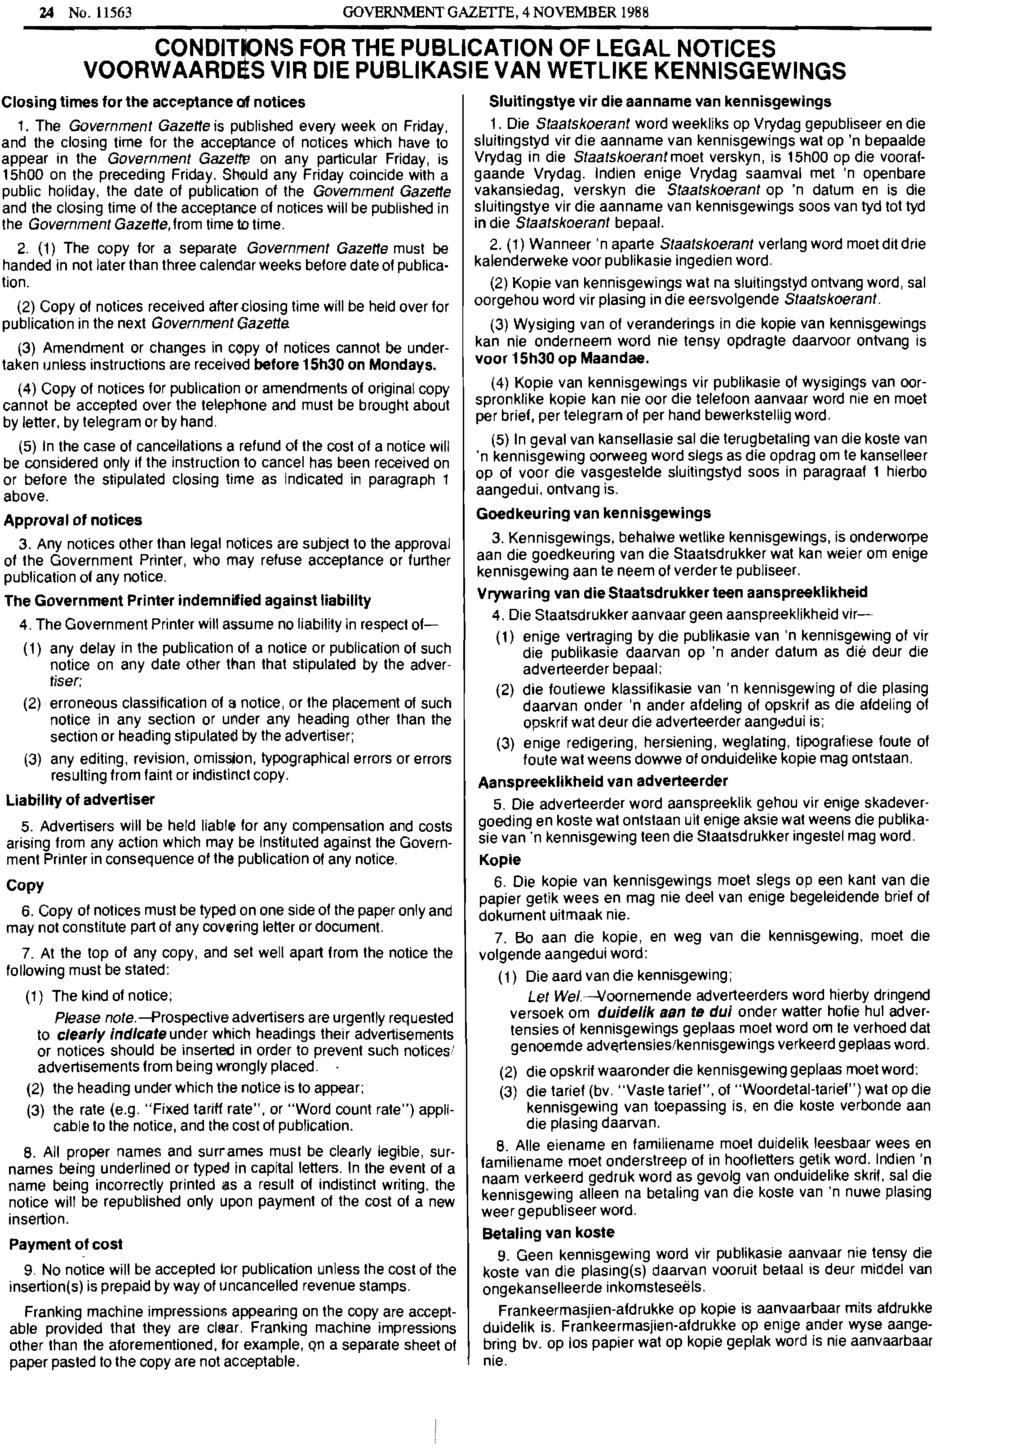 24 No. 11563 GOVERNMENT GAZETTE, 4 NOVEMBER 1988 CONDIT~NS FOR THE PUBLICATION OF LEGAL NOTICES VOORWAARDIiS VIR DIE PUBLIKASIE VAN WETLIKE KENNISGEWINGS Closing times for the acceptance of notices 1.